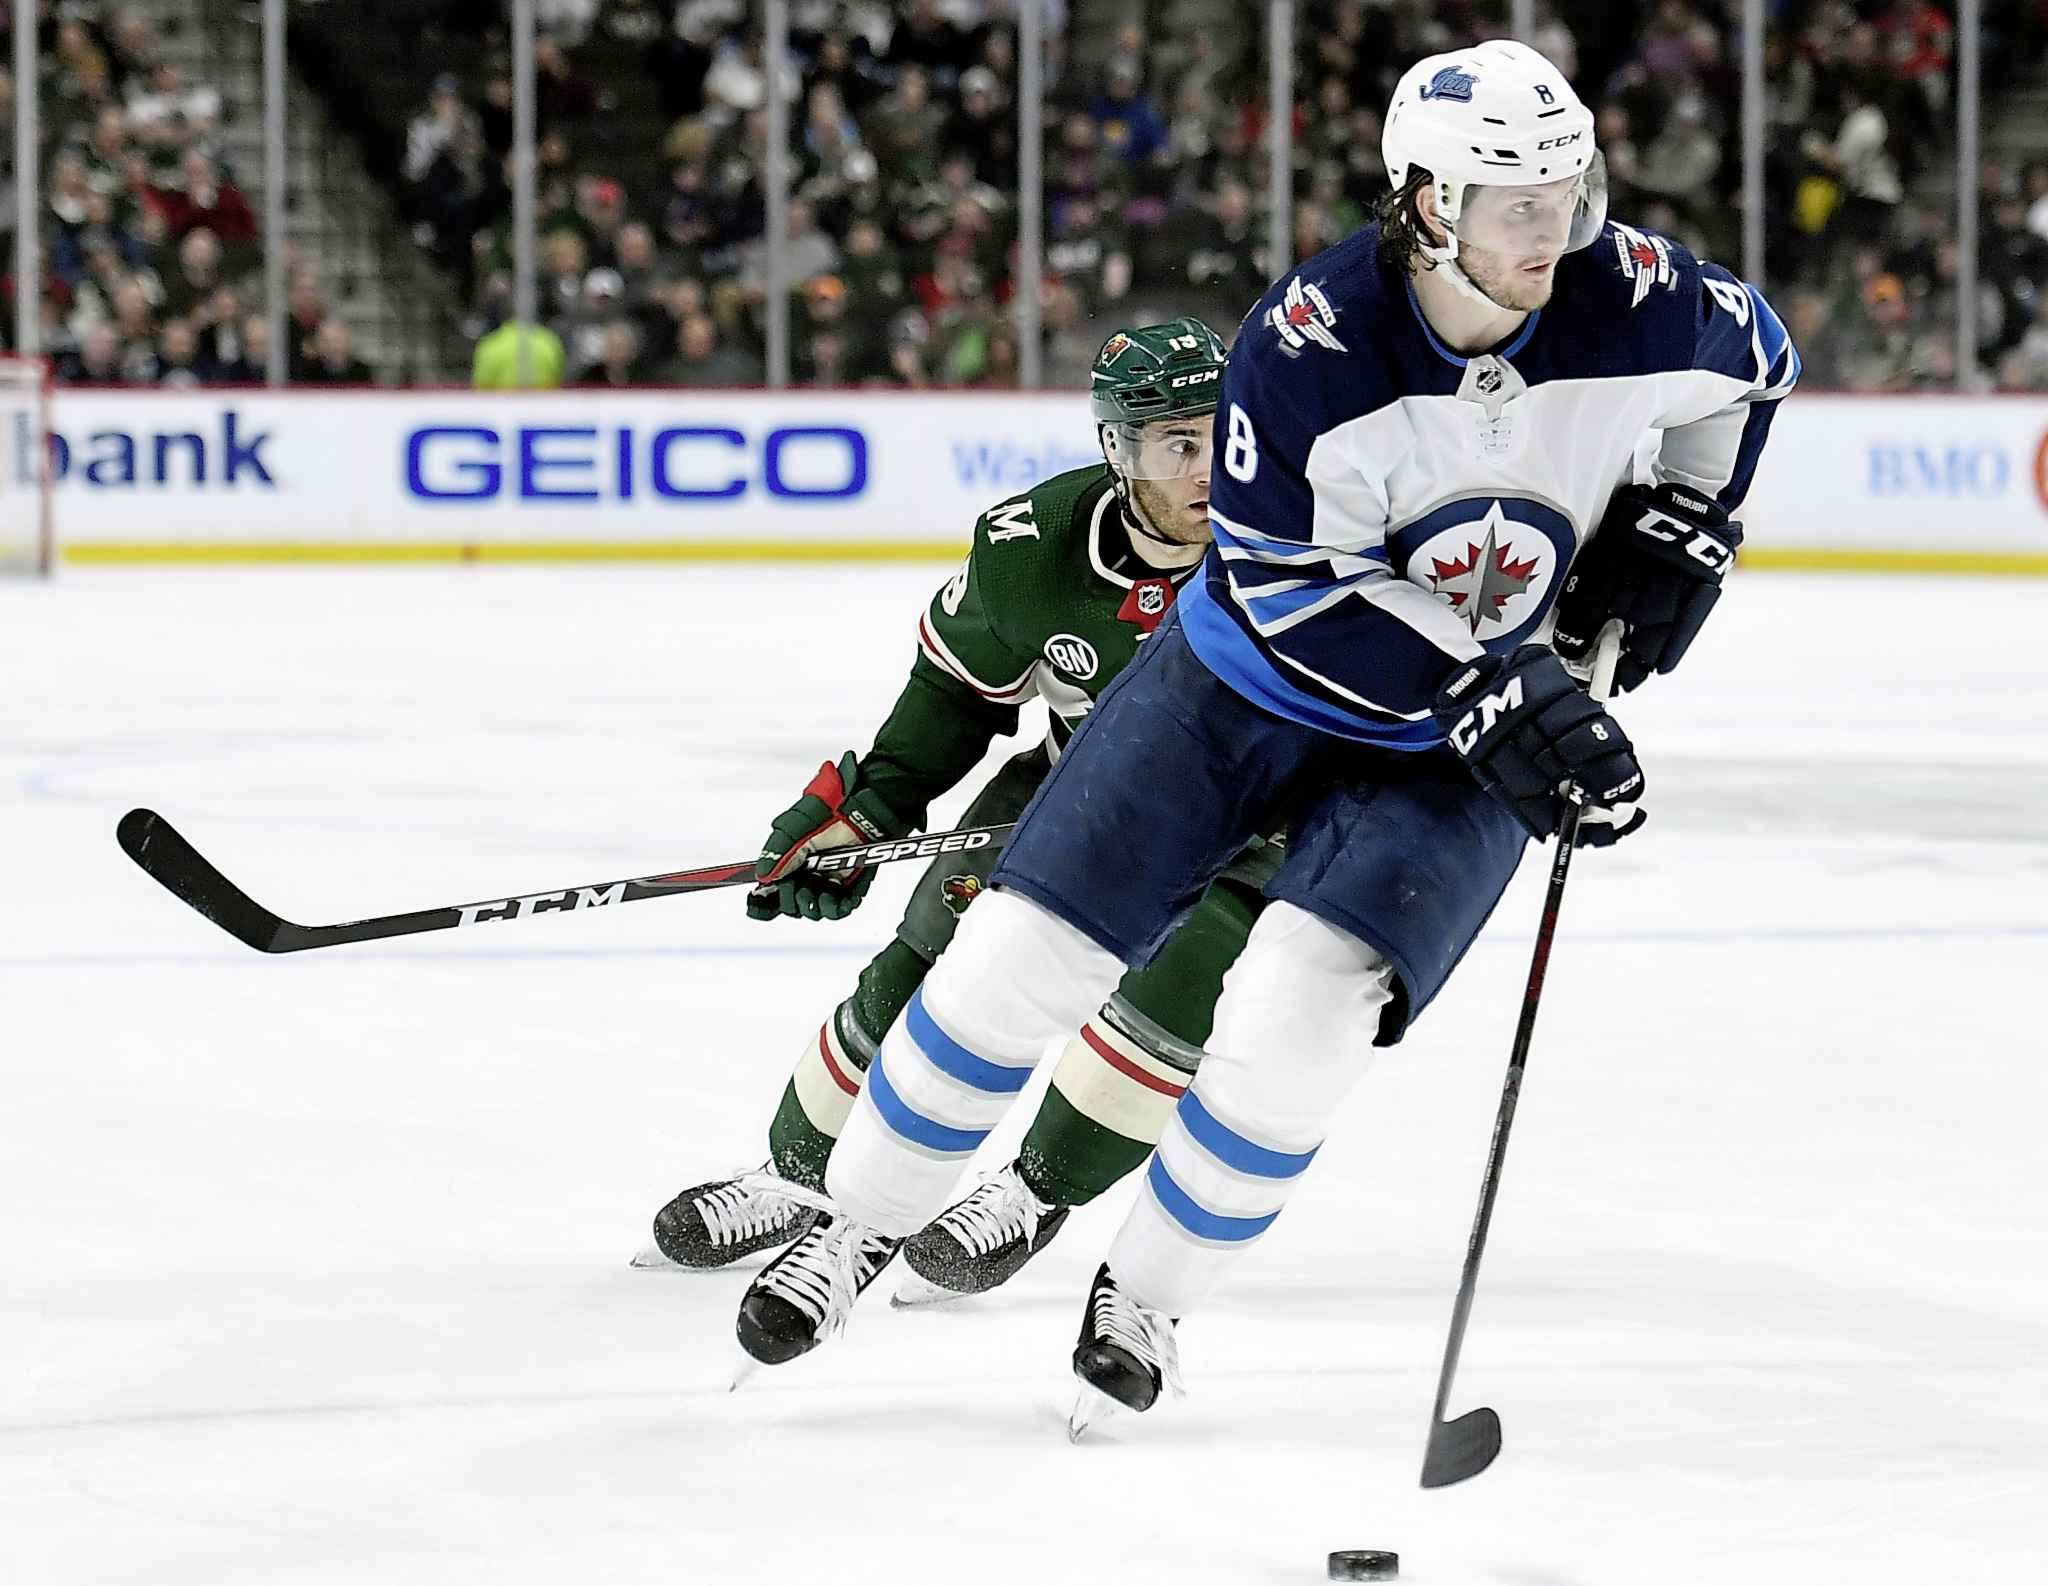 Winnipeg Jets defenceman Jacob Trouba carries the puck while shorthanded against Minnesota Wild centre Luke Kunin during the second period Tuesday. Trouba would score on the play.